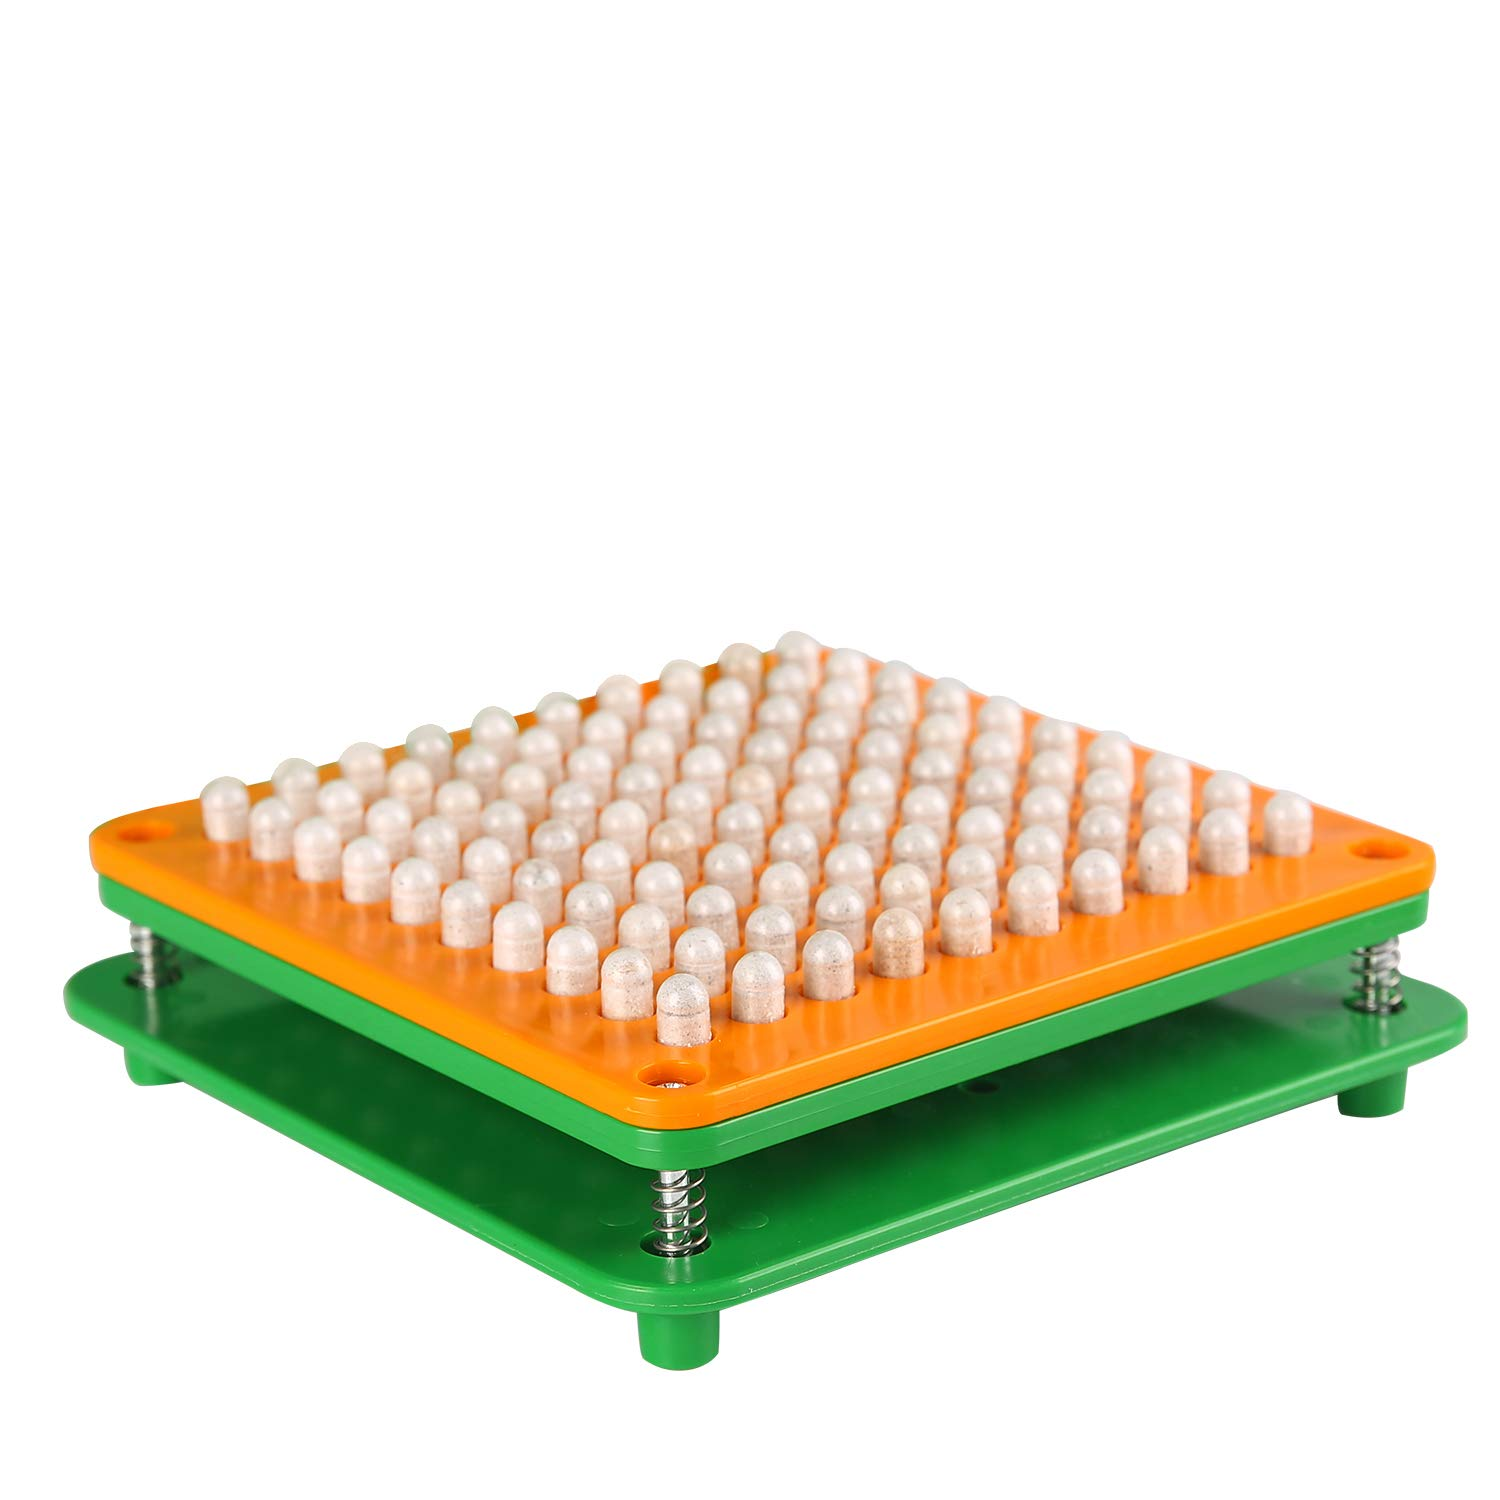 100 Hole (000#) Capsule Holder with Tamper for Size 000 Empty Capsules Holding Tray Pill Dispensers & Reminders -Green by wananfu (Image #5)